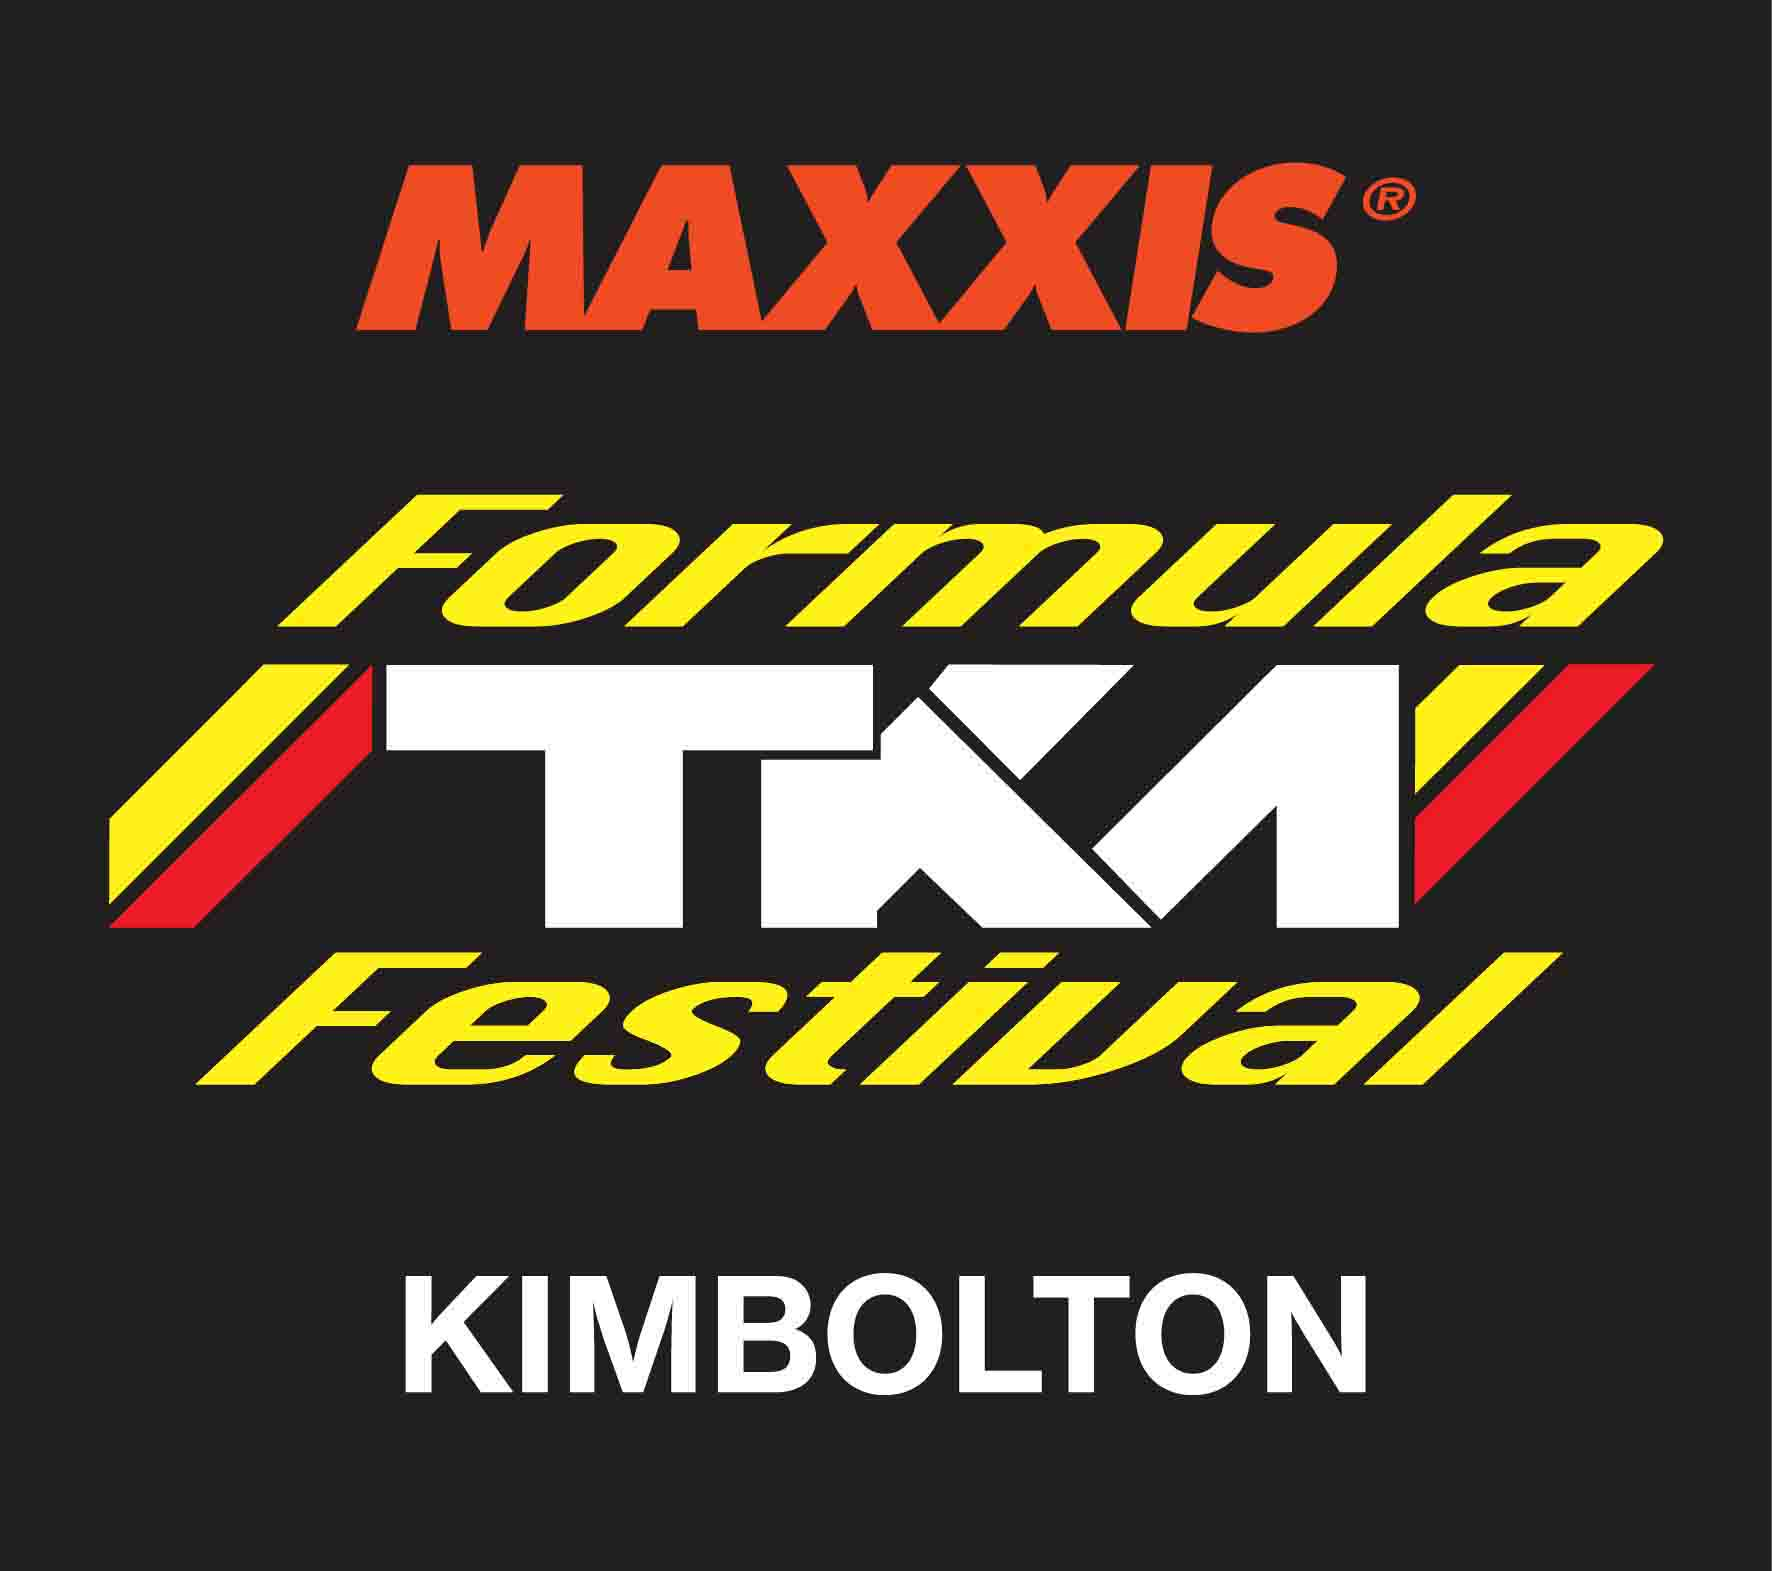 MAXXIS Festival Tyres